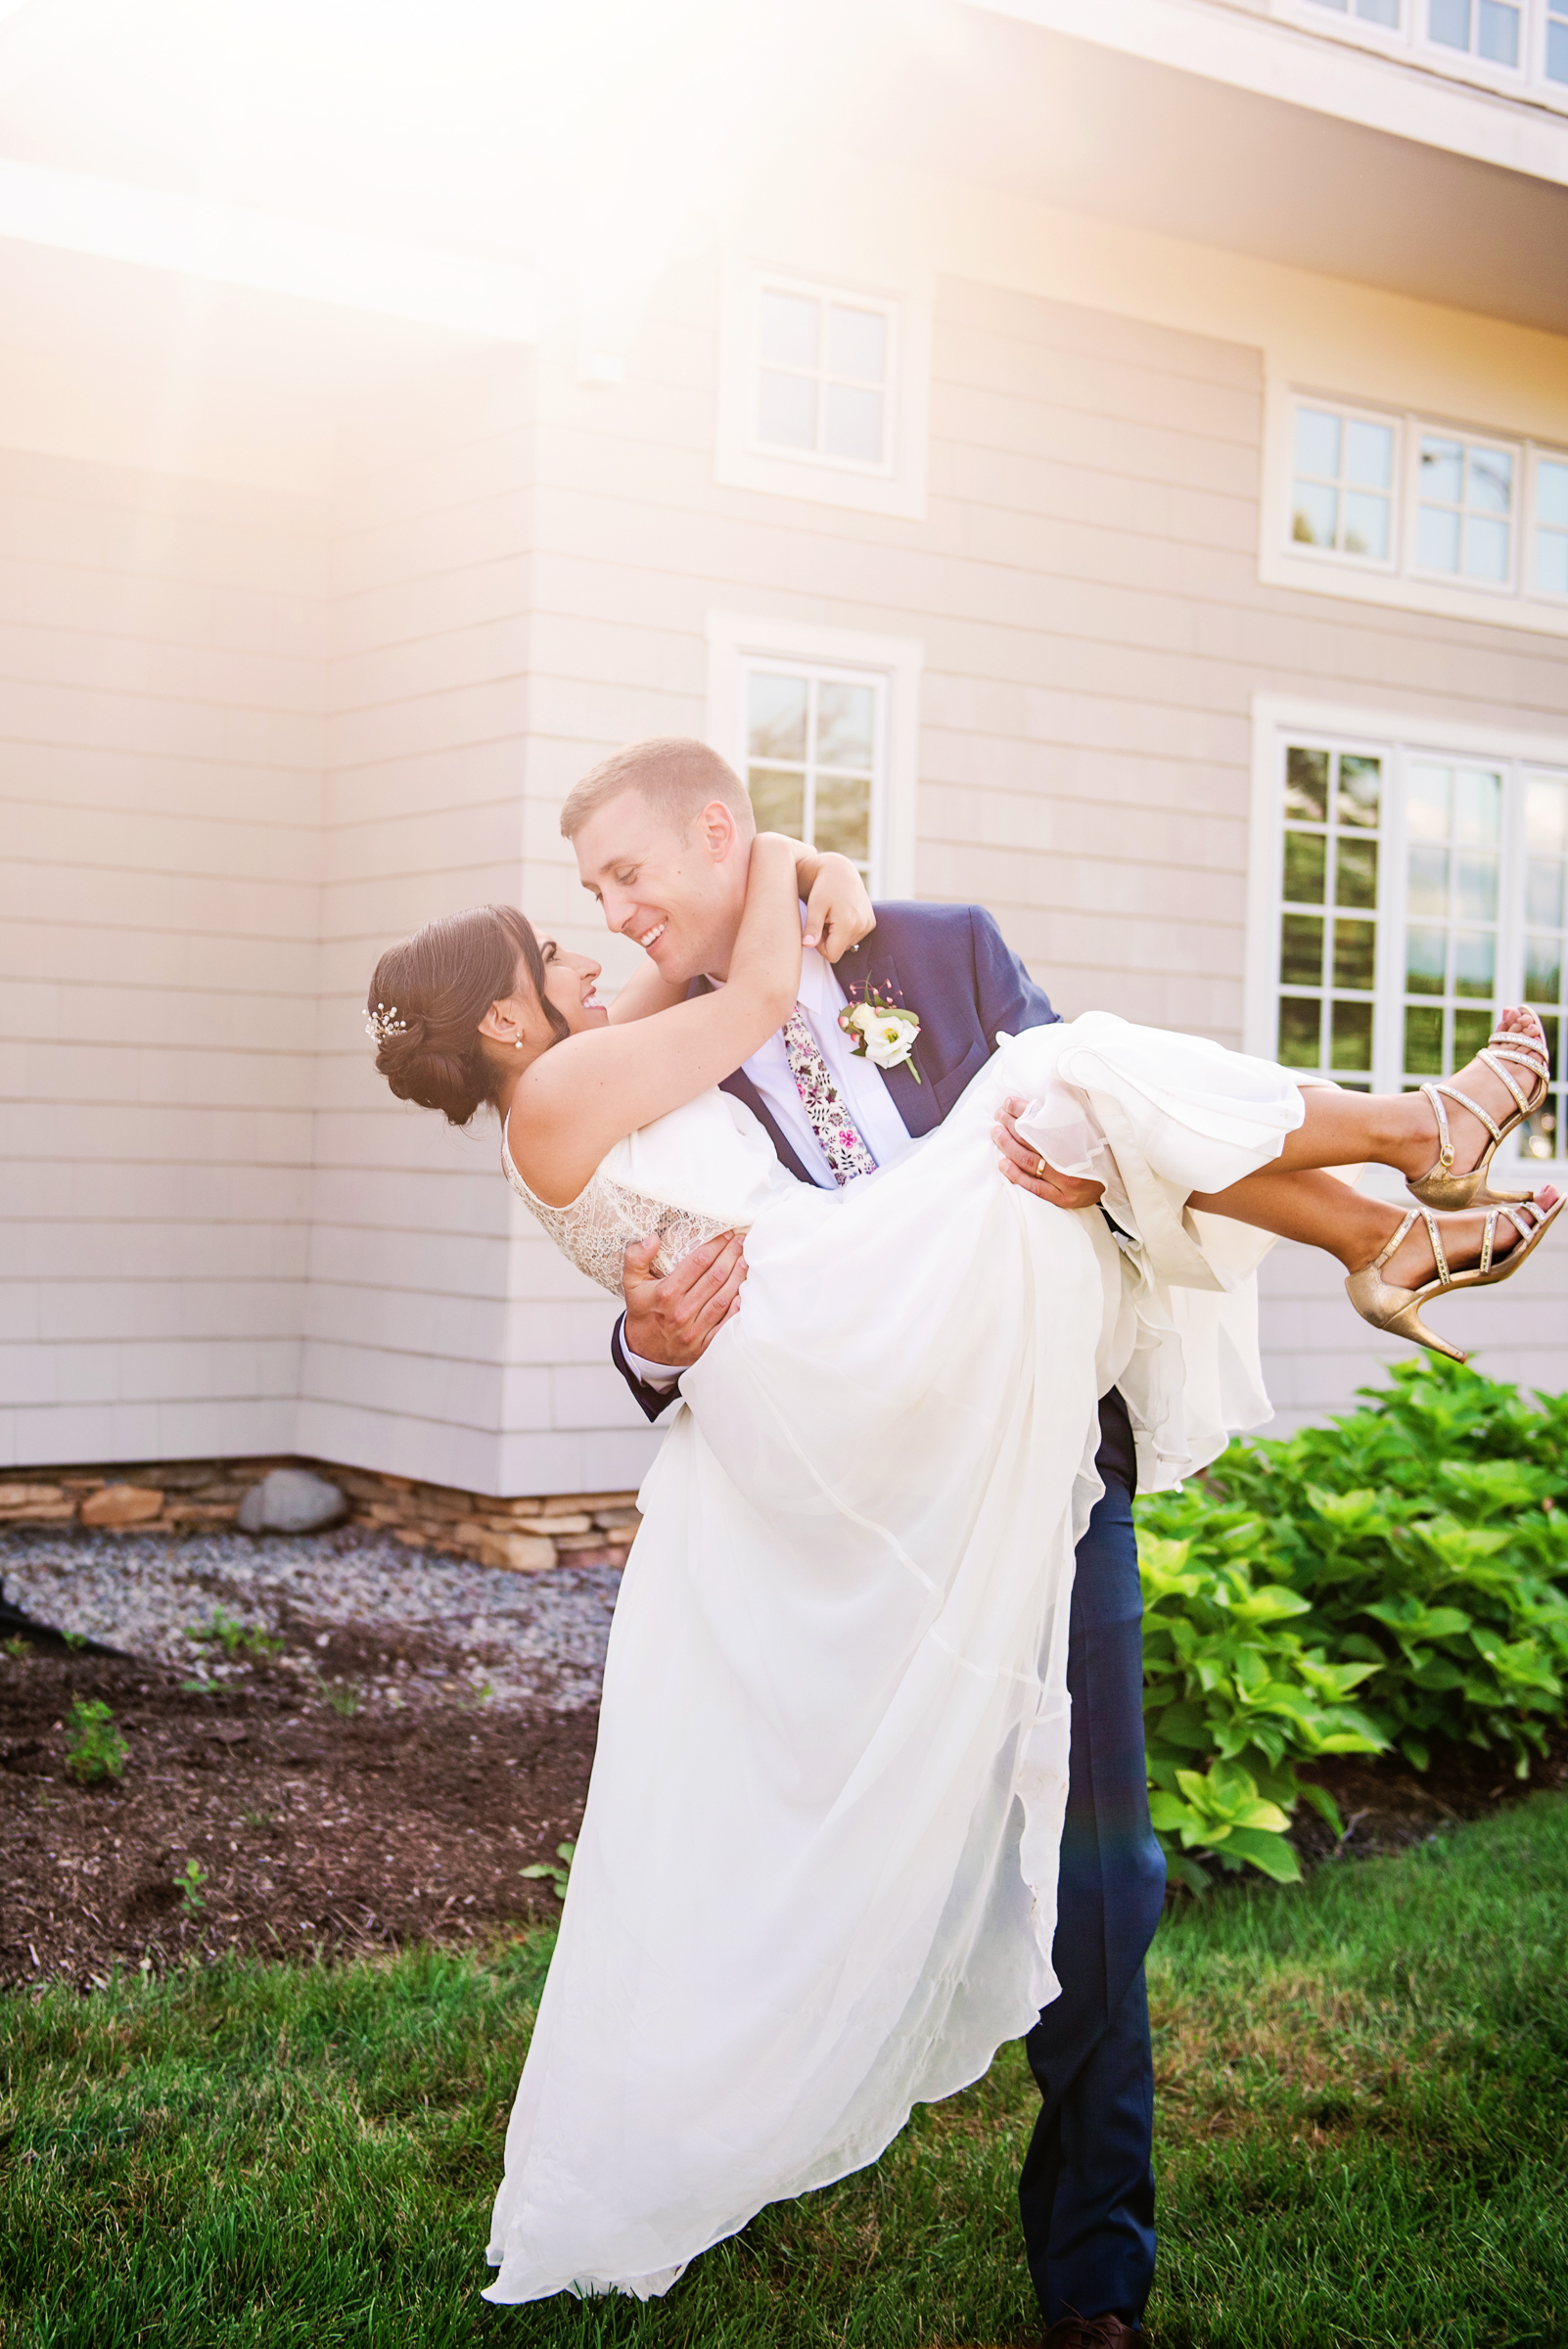 JILL_STUDIO_Wedding_JILL_STUDIO_Rochester_NY_Photographer_13-DSC_1265.jpg